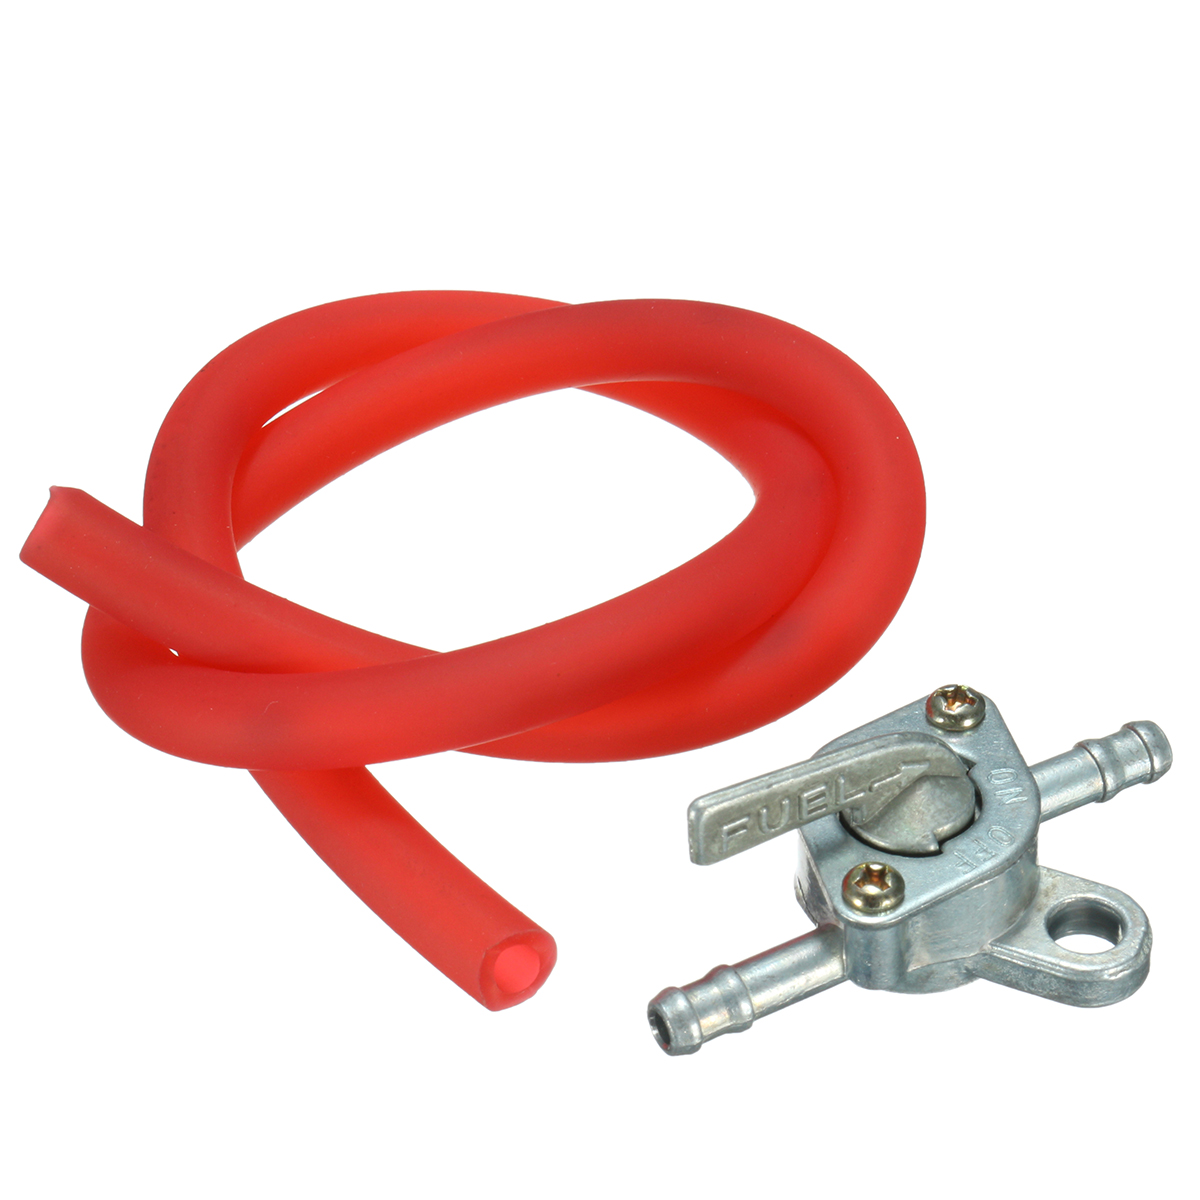 Fuel Tank Switch Petcock Tap With Fuel Line Hose For 49cc 110cc 125cc Pit Dirt Quad Bike ATV